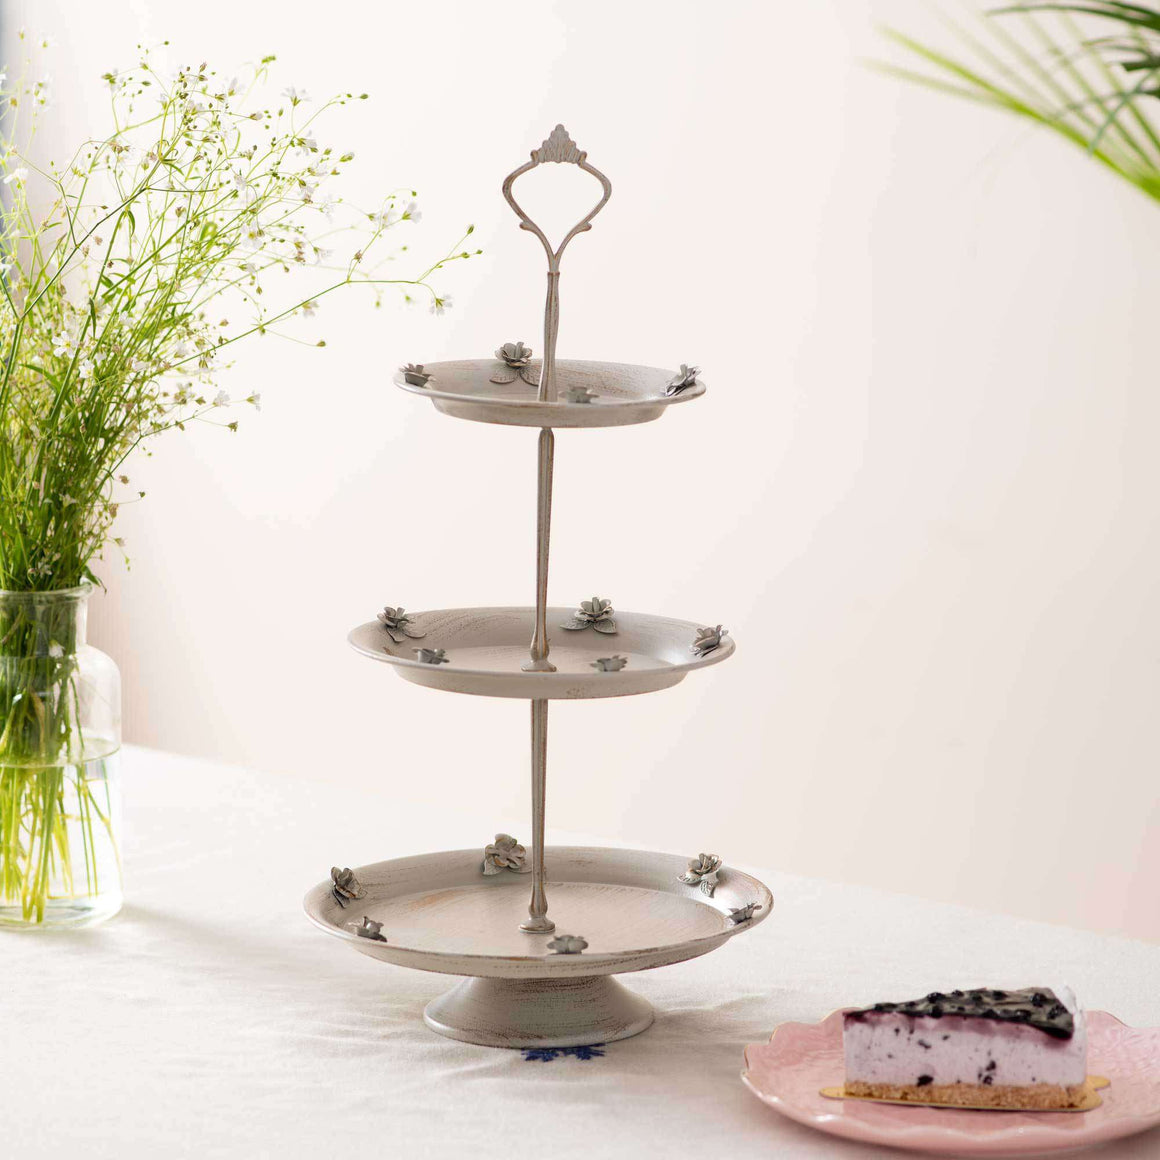 'Flora' 3-Tier Cake Stand